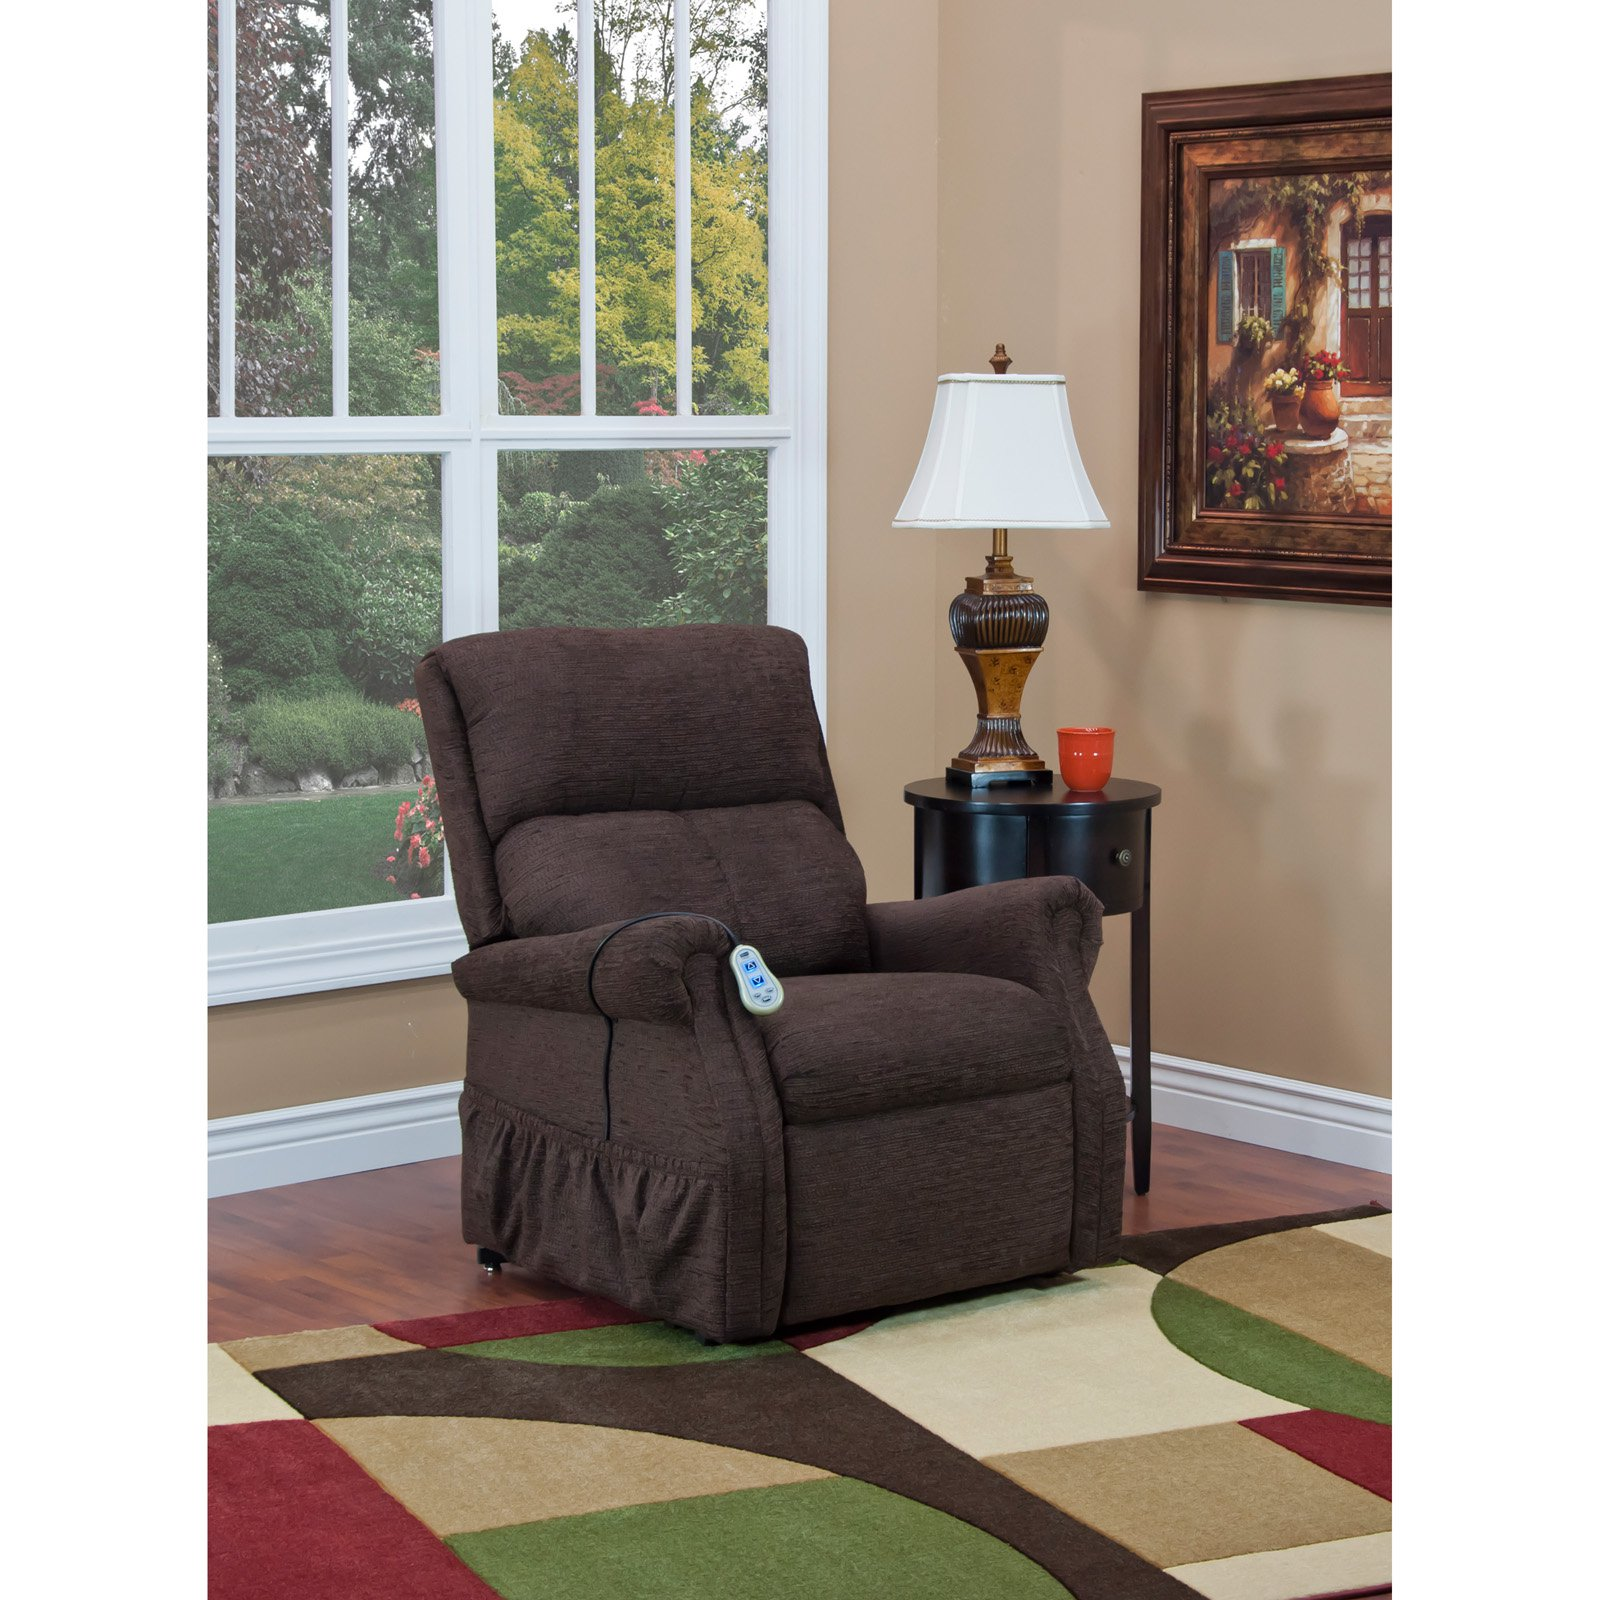 a975157a8611a Med-Lift Encounter Recliner in 2019 | Products | Recliner ...